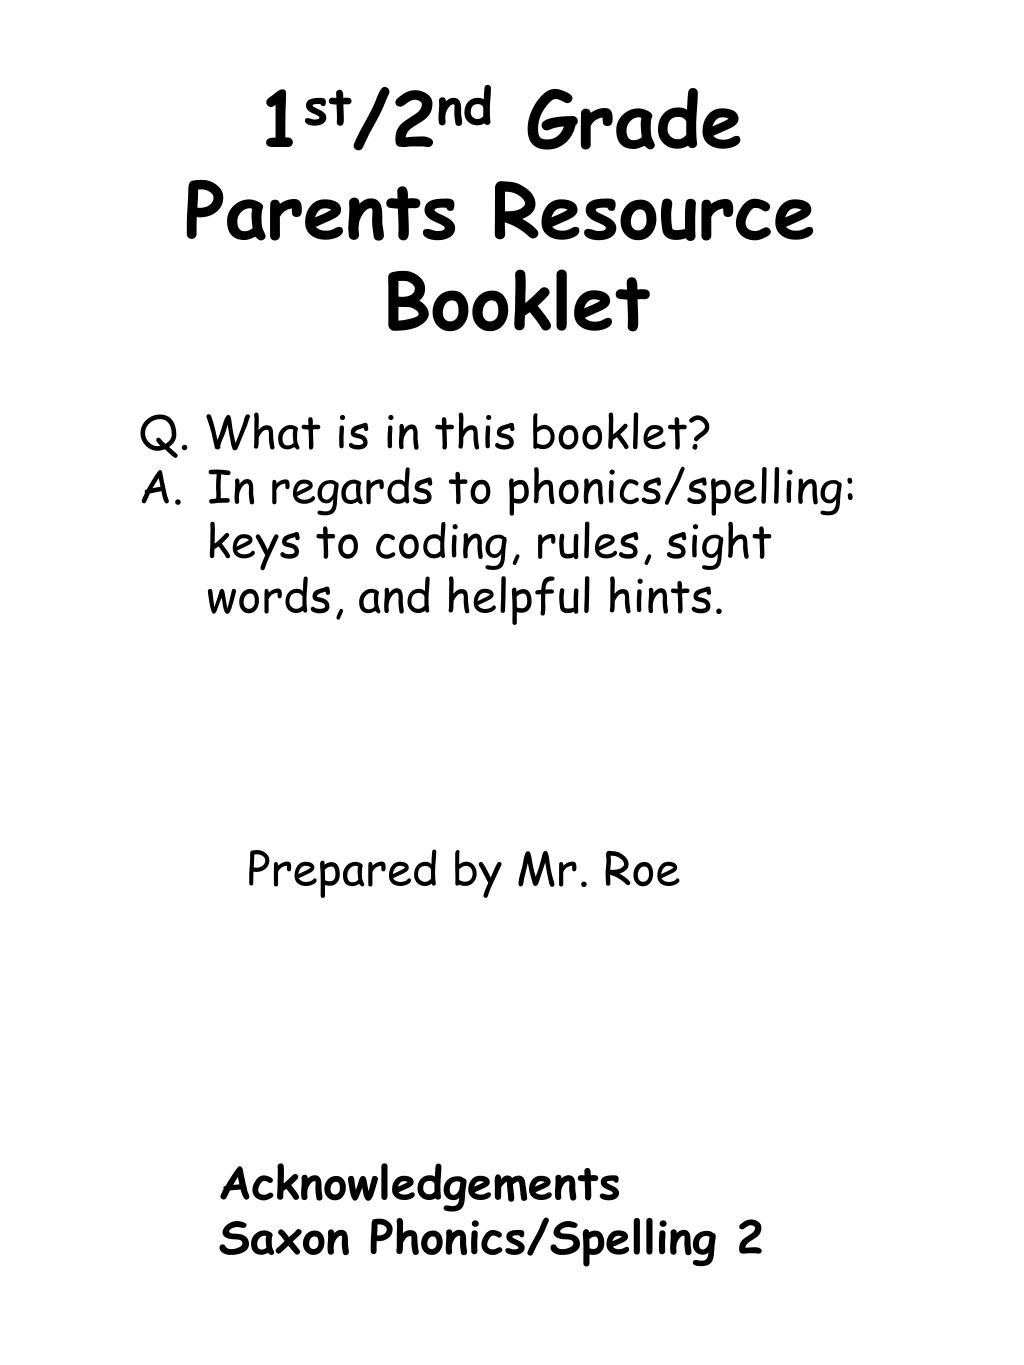 Irregularly Spelled Words 2nd Grade Ppt 1 St 2 Nd Grade Parents Resource Booklet Powerpoint